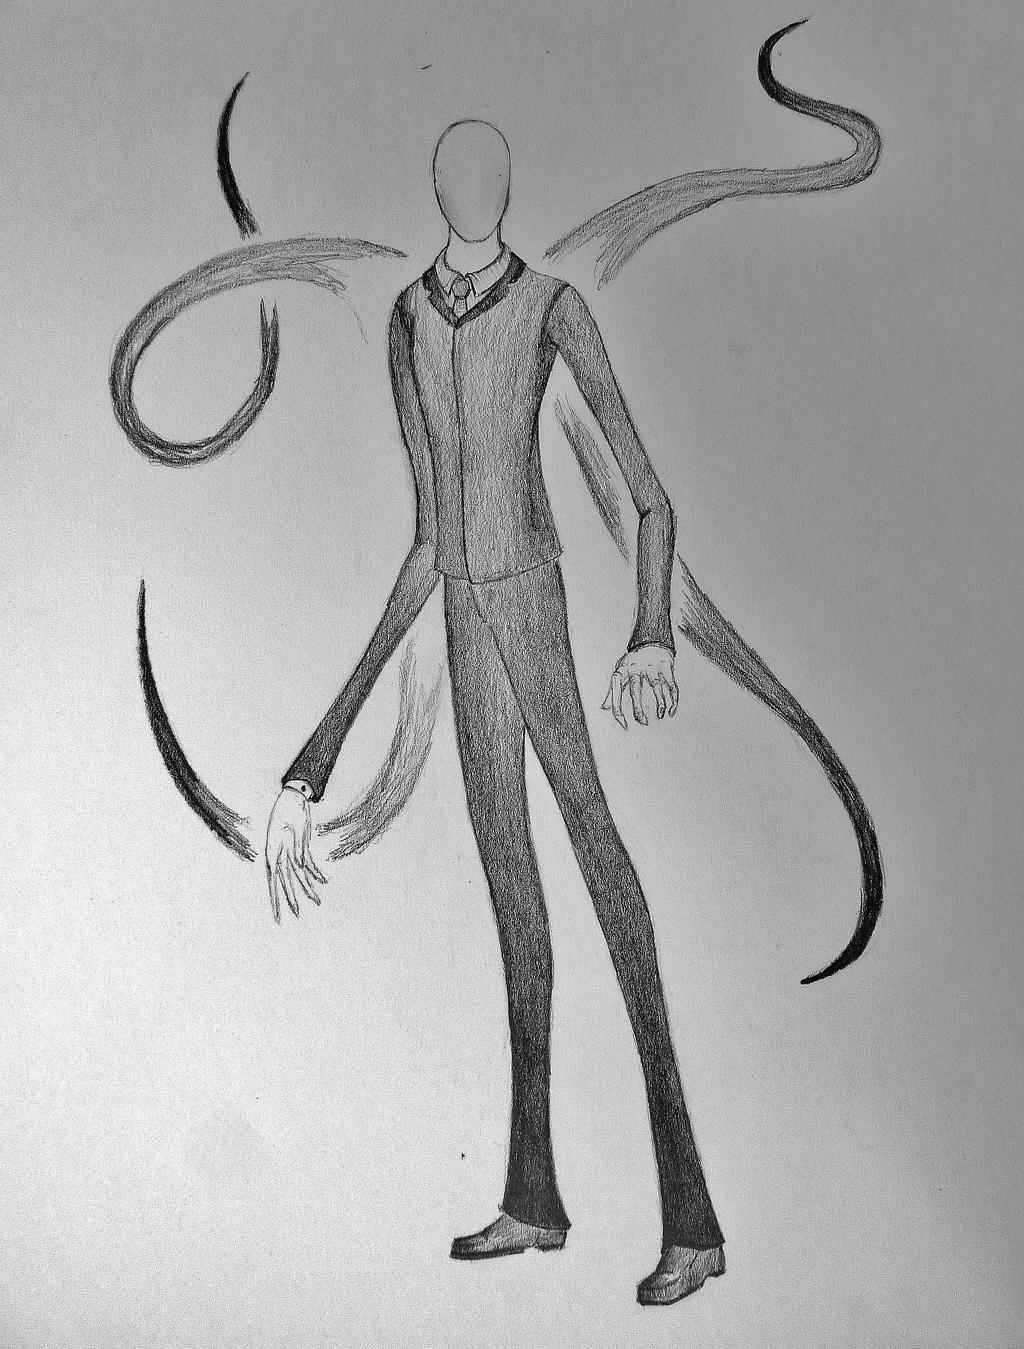 Boss Fs 6 Wiring Diagram Reveolution Of V Plow Harness Slender Man Drawing From Game Www Imgkid Com The Image Schematic